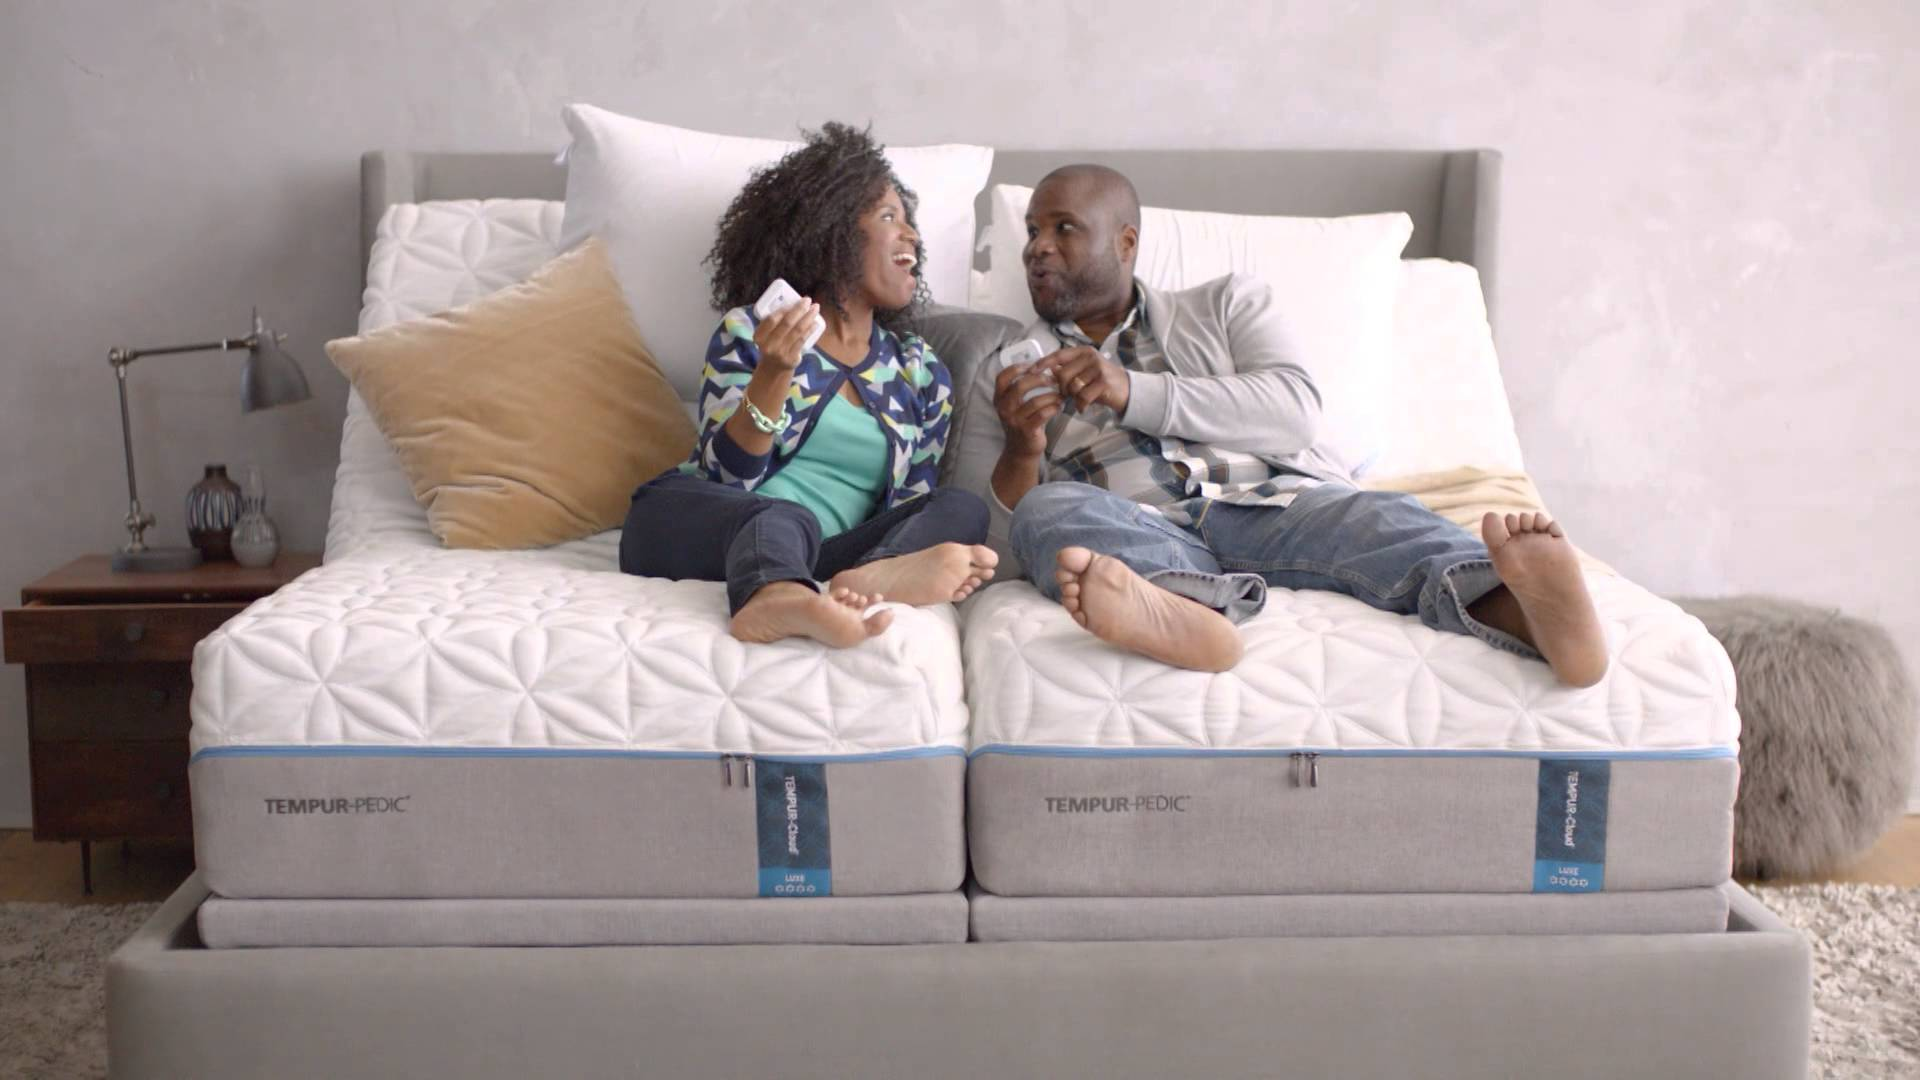 There's Nothing Like My Tempur-Pedic Commercial Song